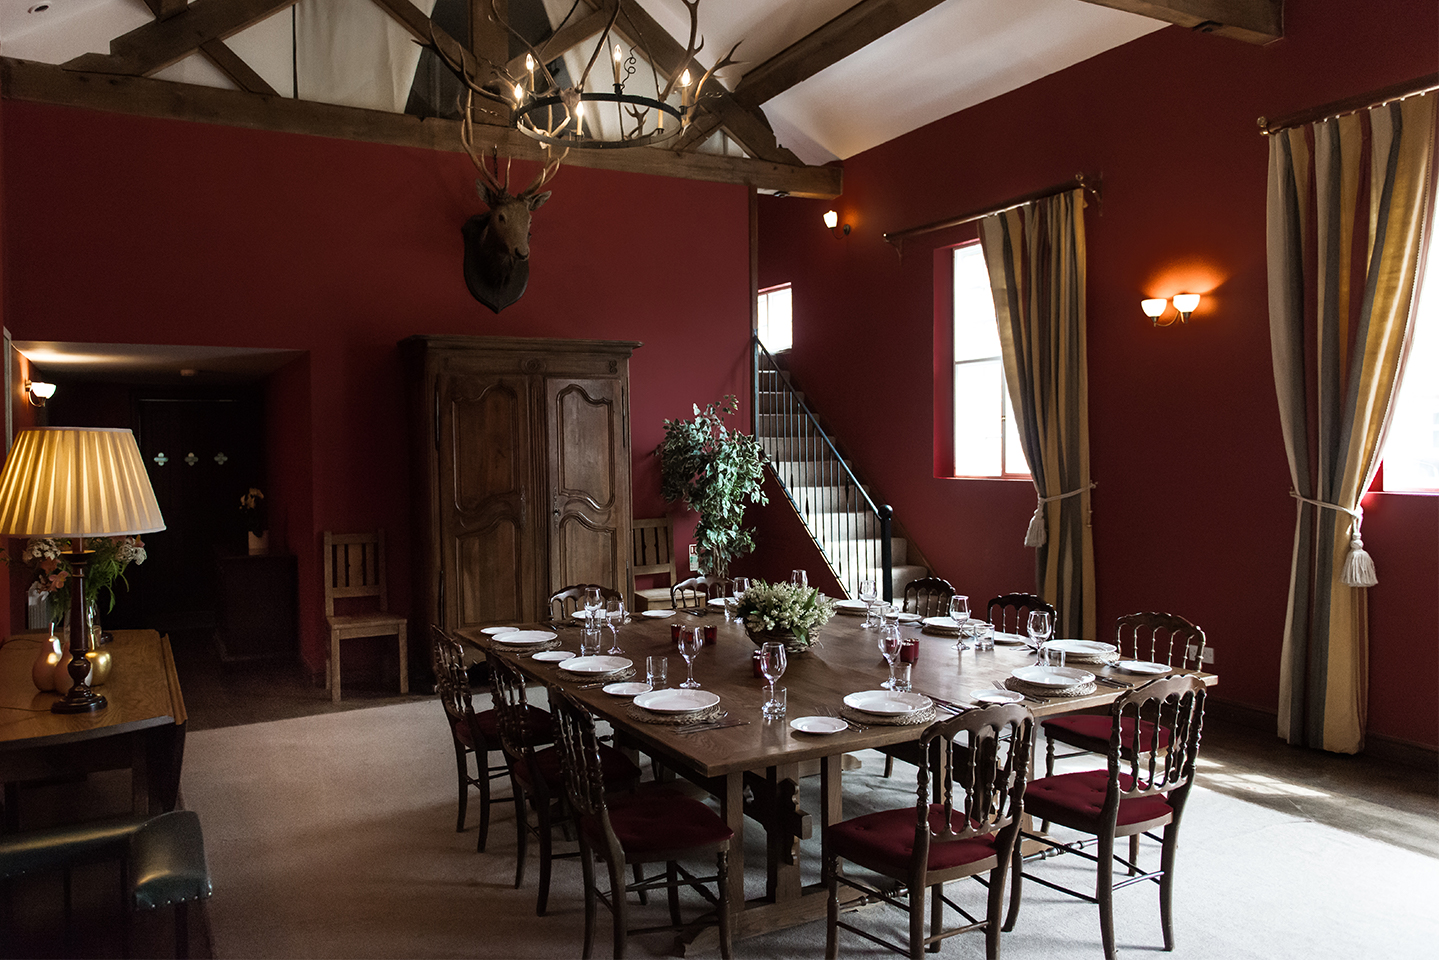 Dine in luxury in the Beckett cottage at Combermere Abbey's holiday accommodation in Cheshire